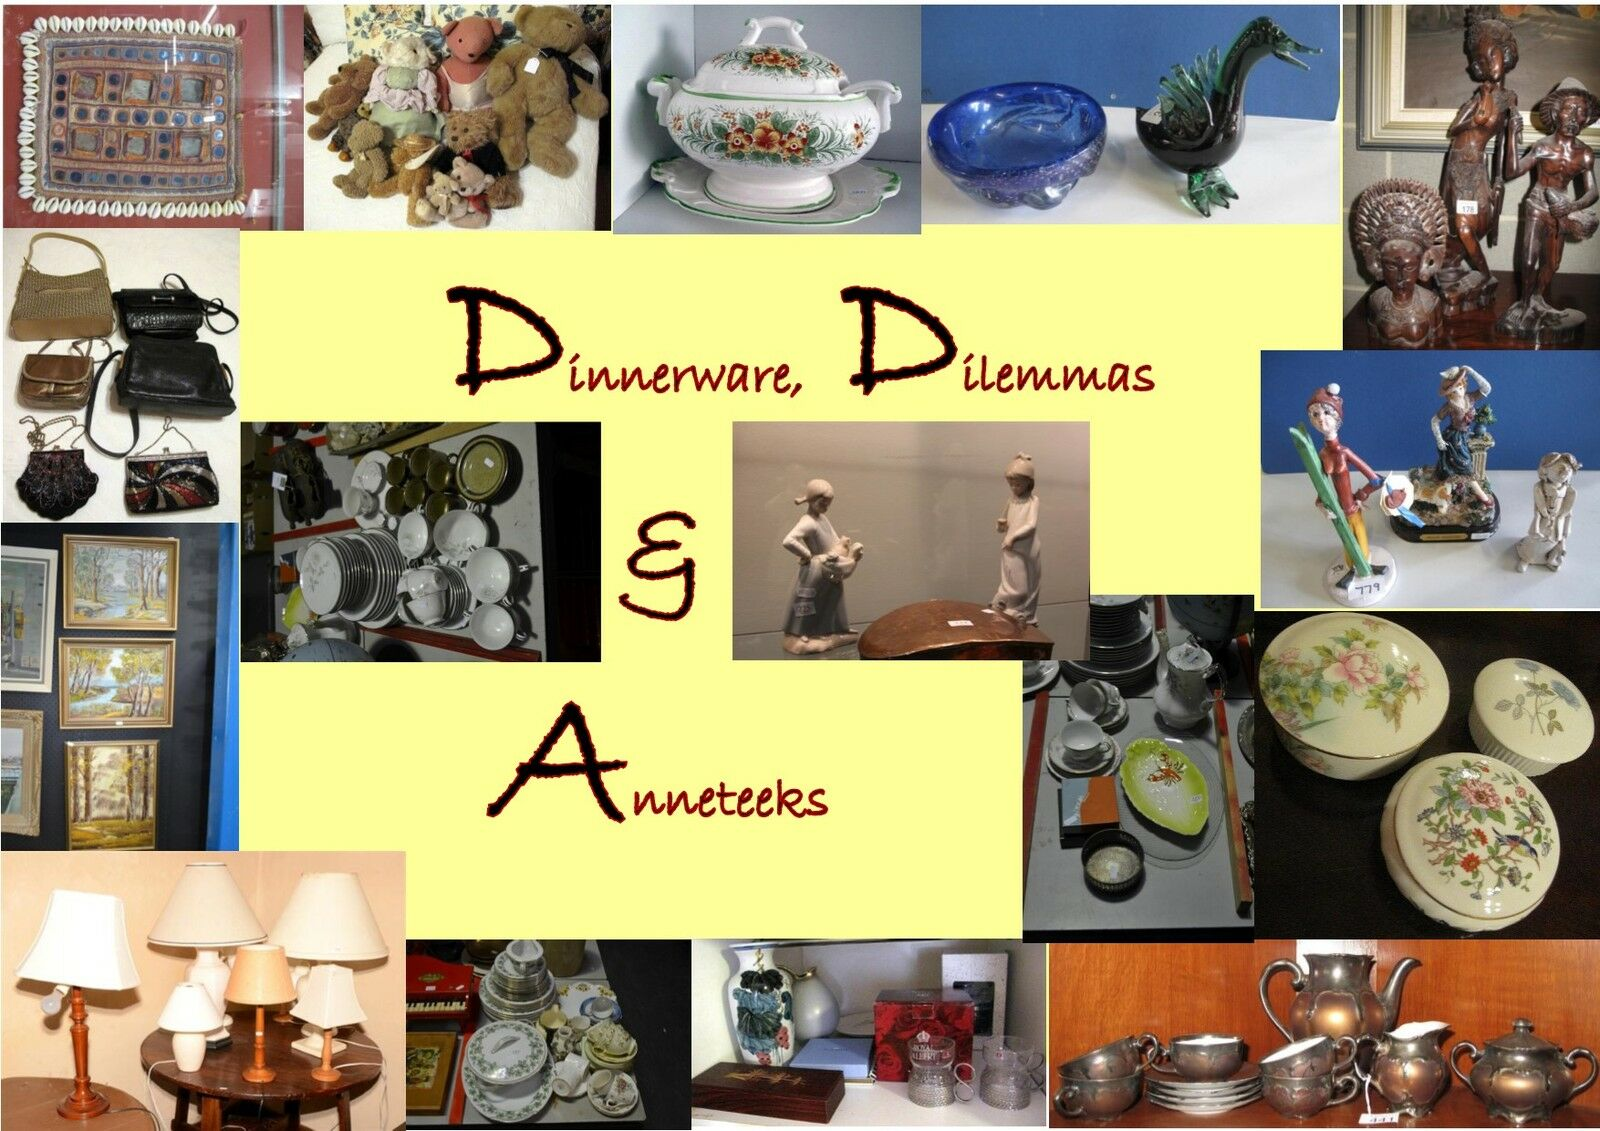 Dinnerware Dilemmas and Anneteeks